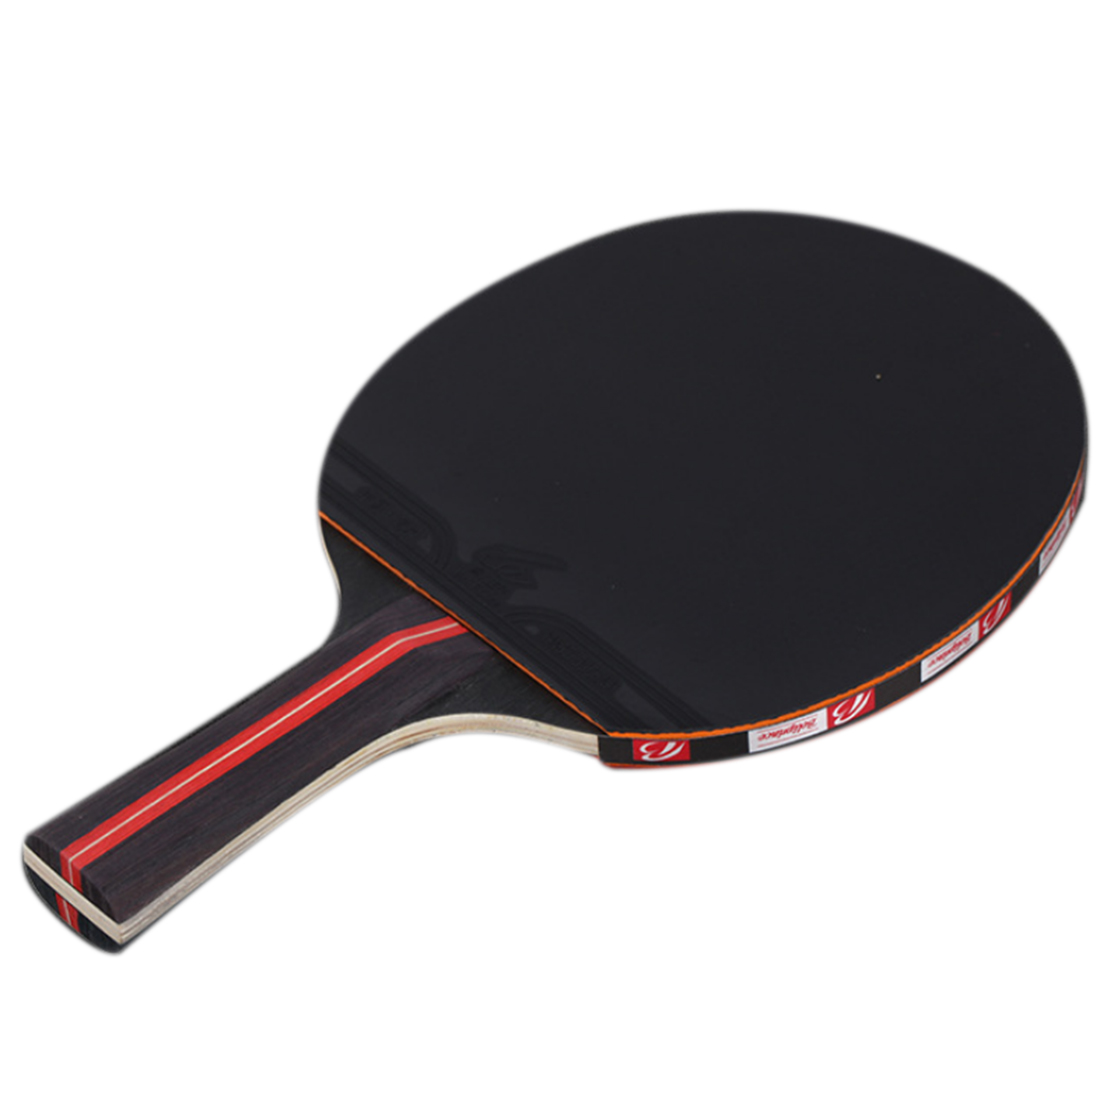 short essay on table tennis Like many other sports, table tennis began as a mild social diversion descending from lawn tennis to badminton to the ancient medieval gam.